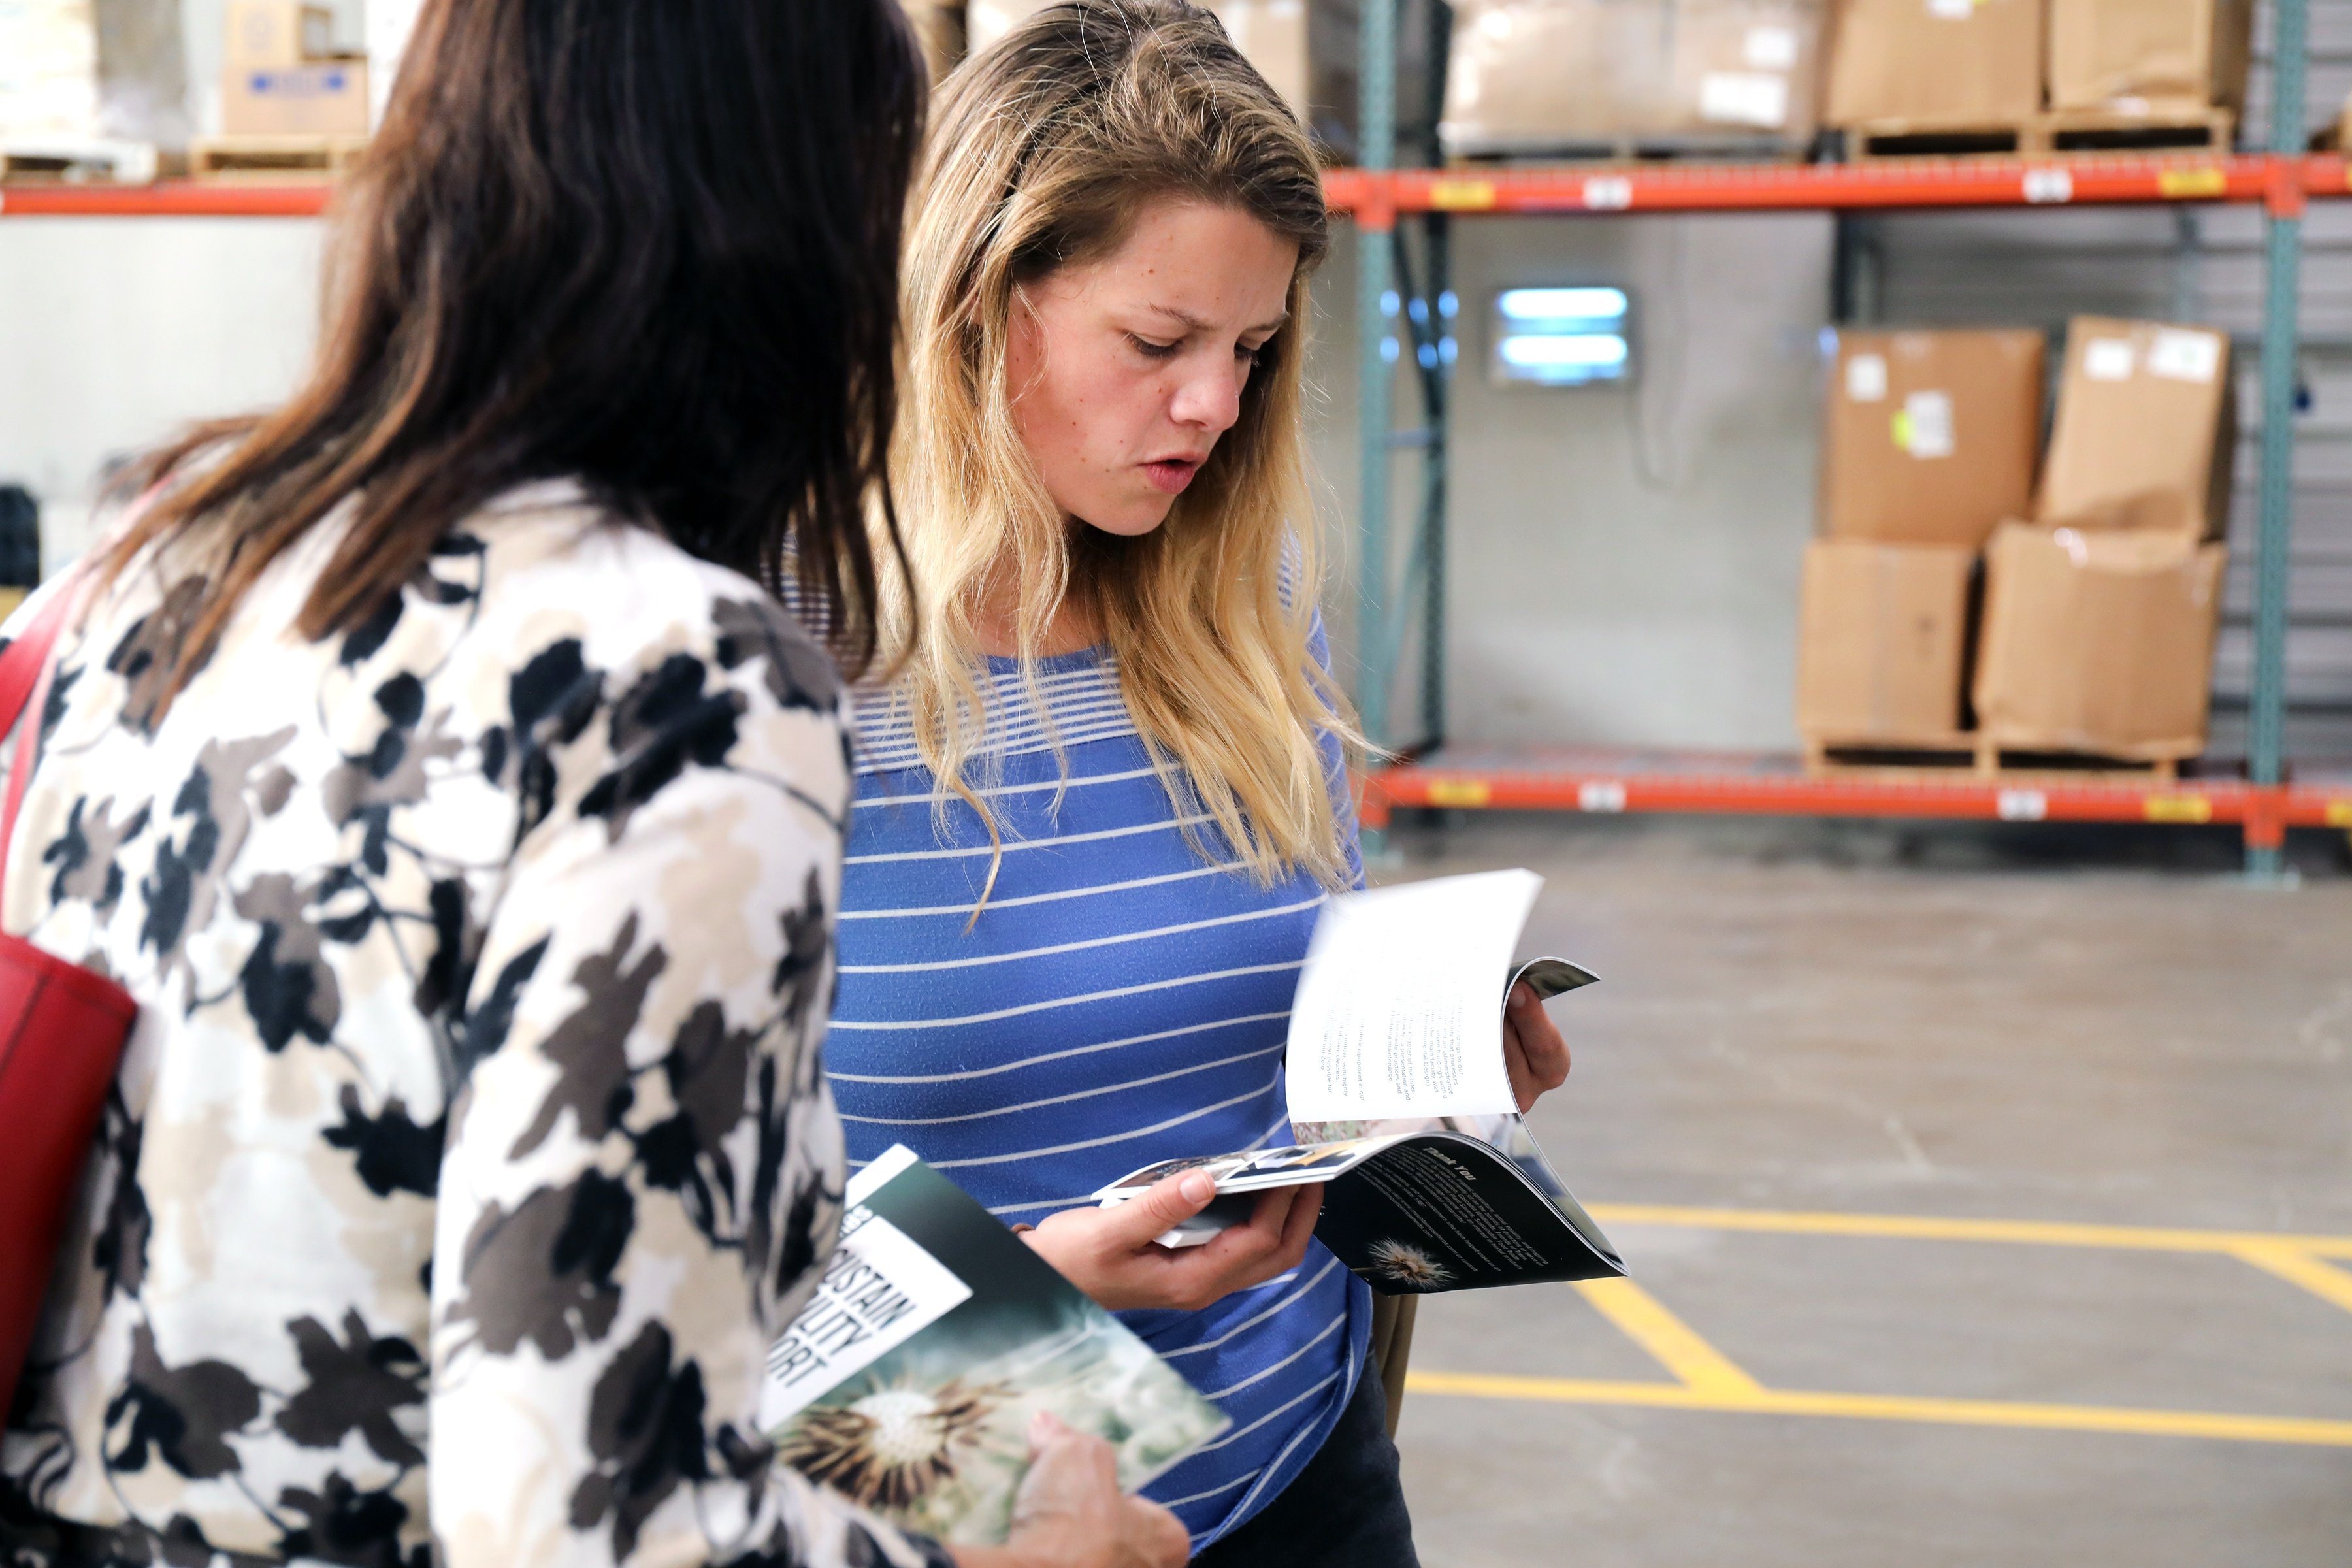 Two women reviewing pamphlet in warehouse setting